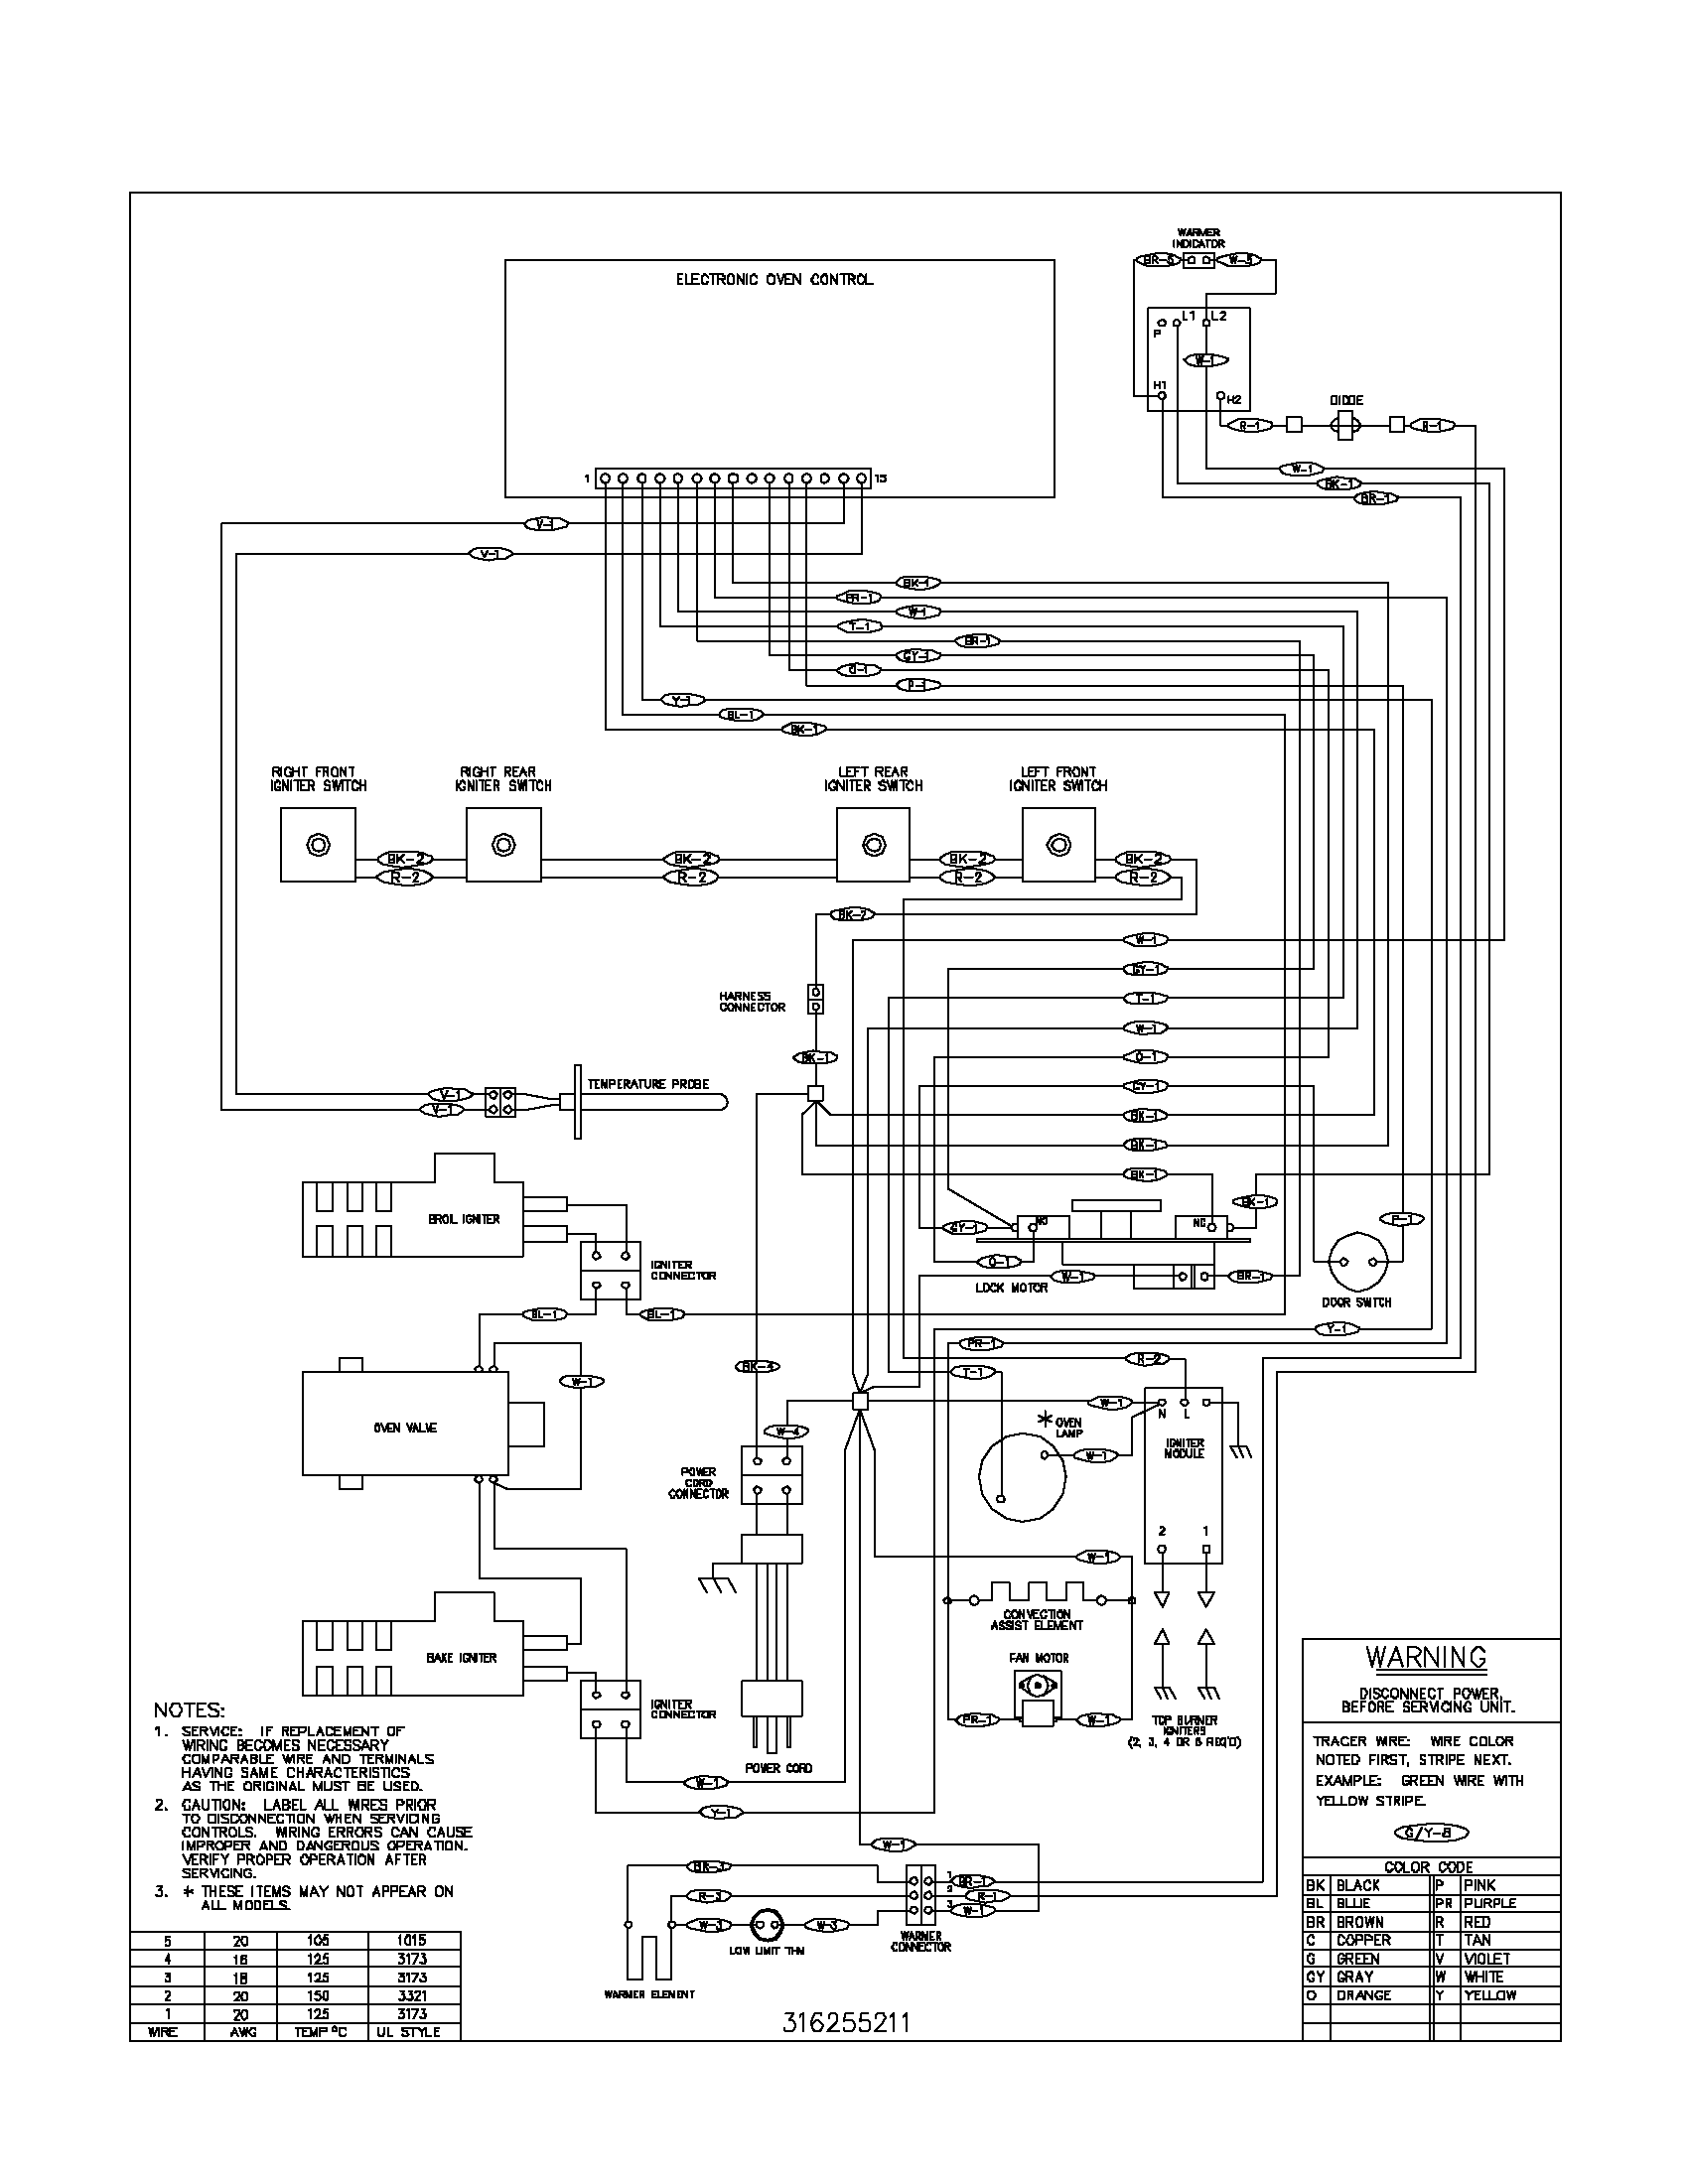 wiring diagram parts?resize\\\\\\\\\\\\\\\\\\\\\\\\\\\\\\\=665%2C861\\\\\\\\\\\\\\\\\\\\\\\\\\\\\\\&ssl\\\\\\\\\\\\\\\\\\\\\\\\\\\\\\\=1 kenmore refrigerator wire diagram kenmore schematic diagram kenmore side by side refrigerator wiring diagram at eliteediting.co